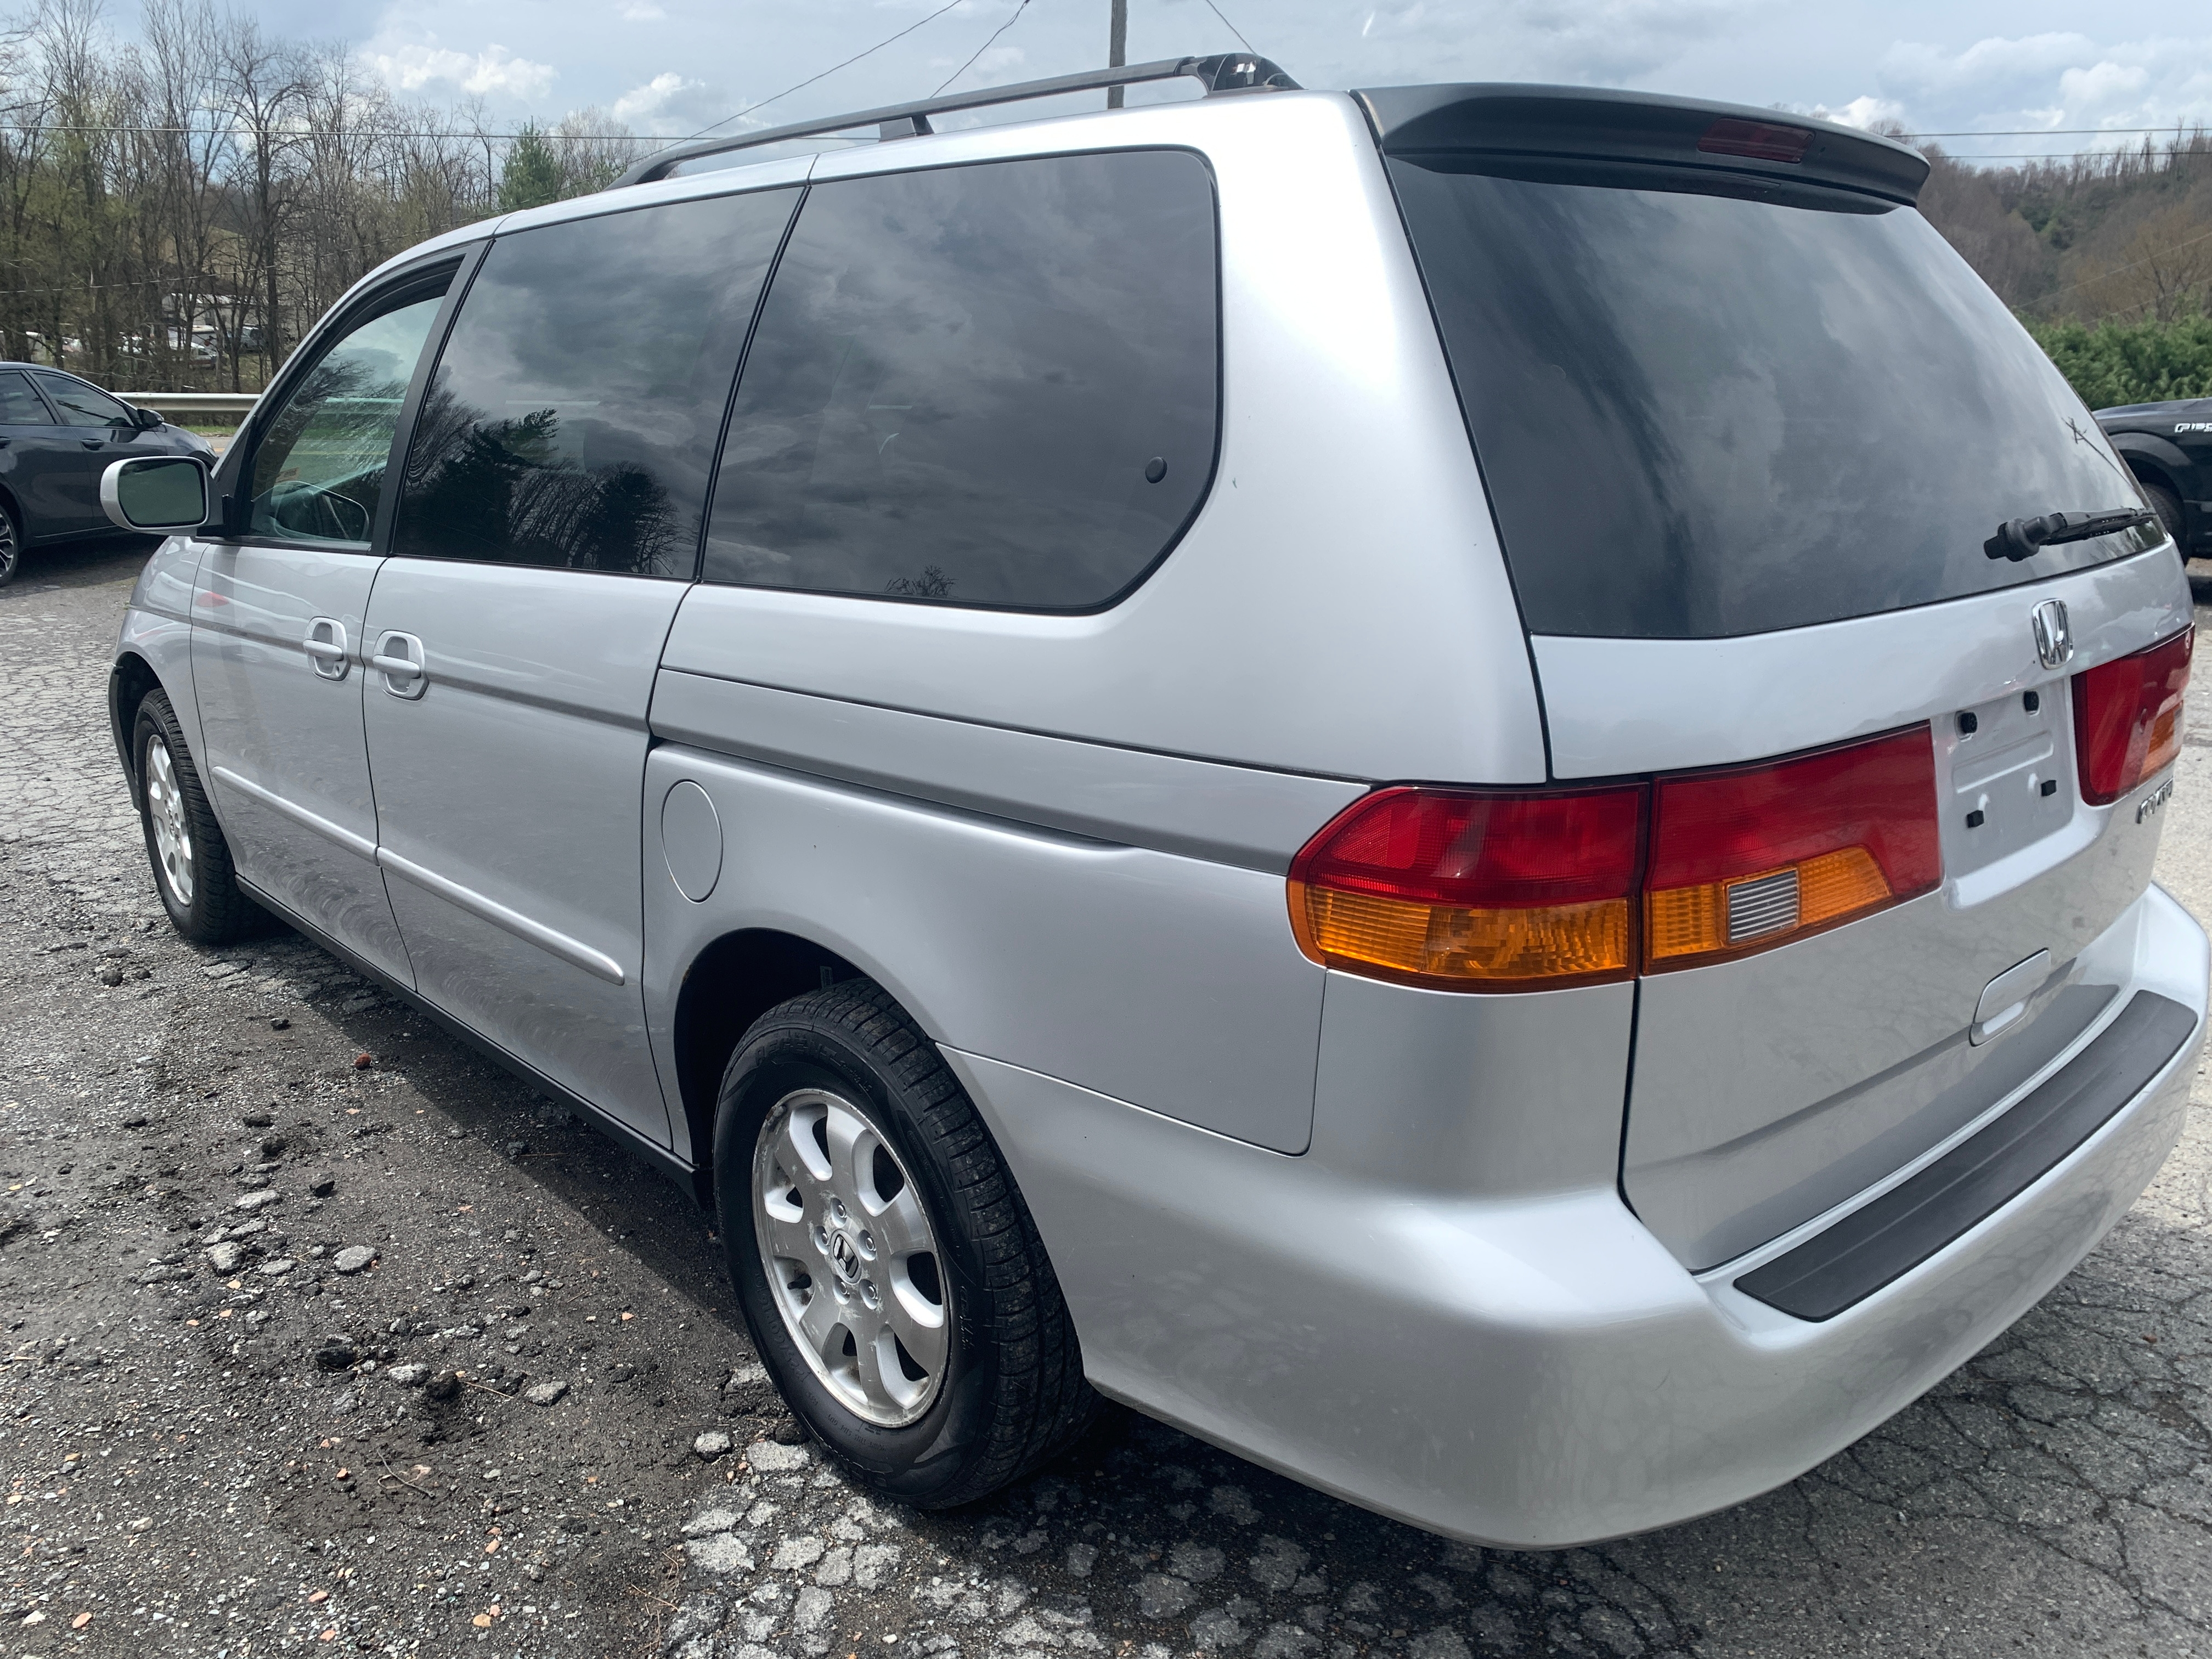 2004 honda odyssey 5dr ex l w leather linville creek auto sales dealership in zionville 2004 honda odyssey 5dr ex l w leather